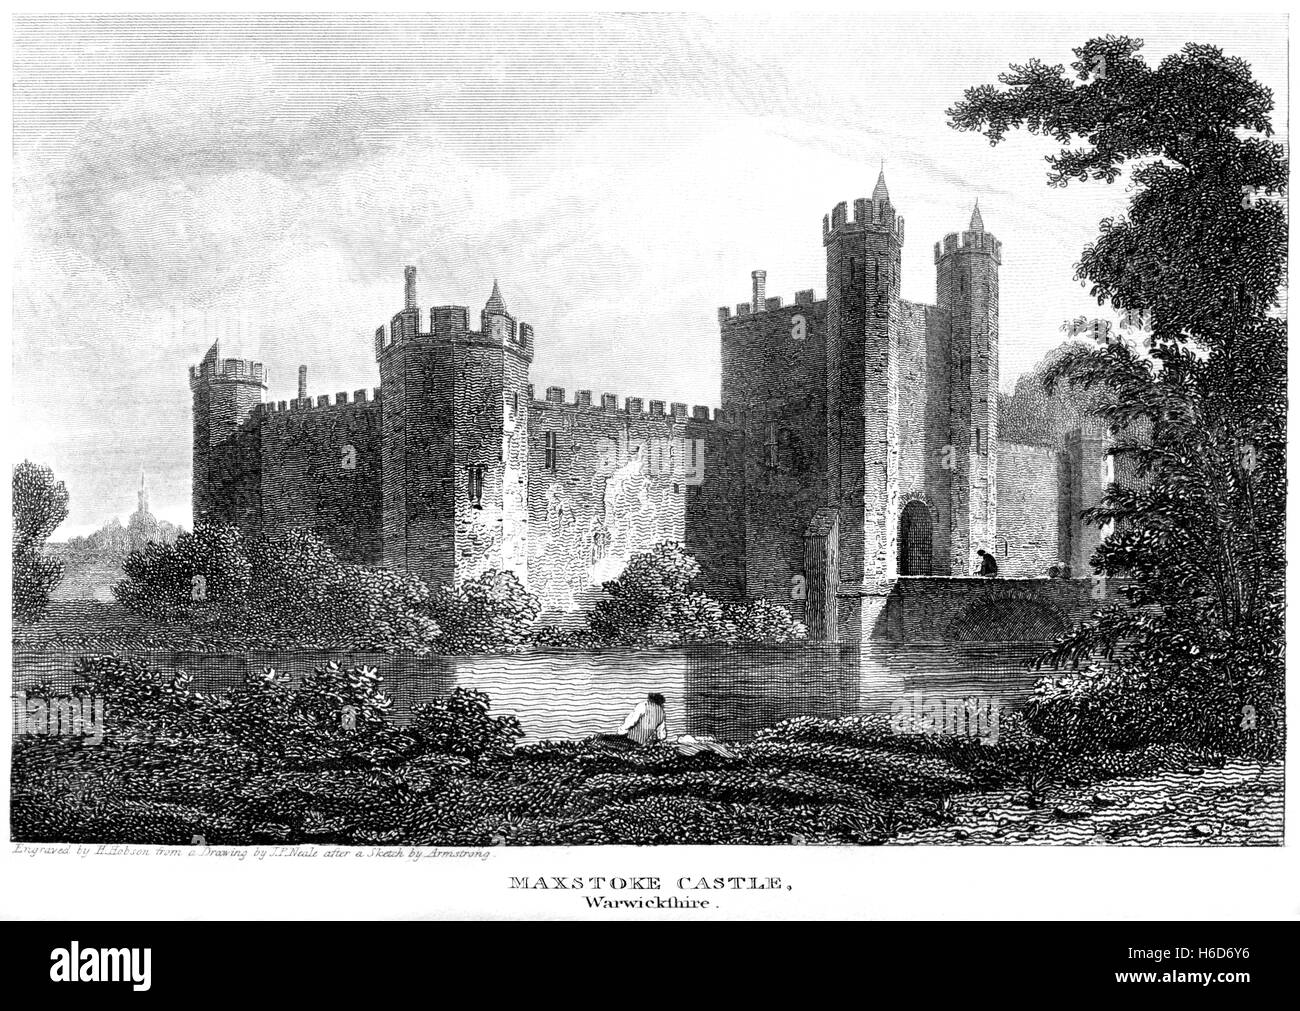 An engraving of Maxstoke Castle, Warwickshire scanned at high resolution from a book printed in 1812. Believed copyright - Stock Image